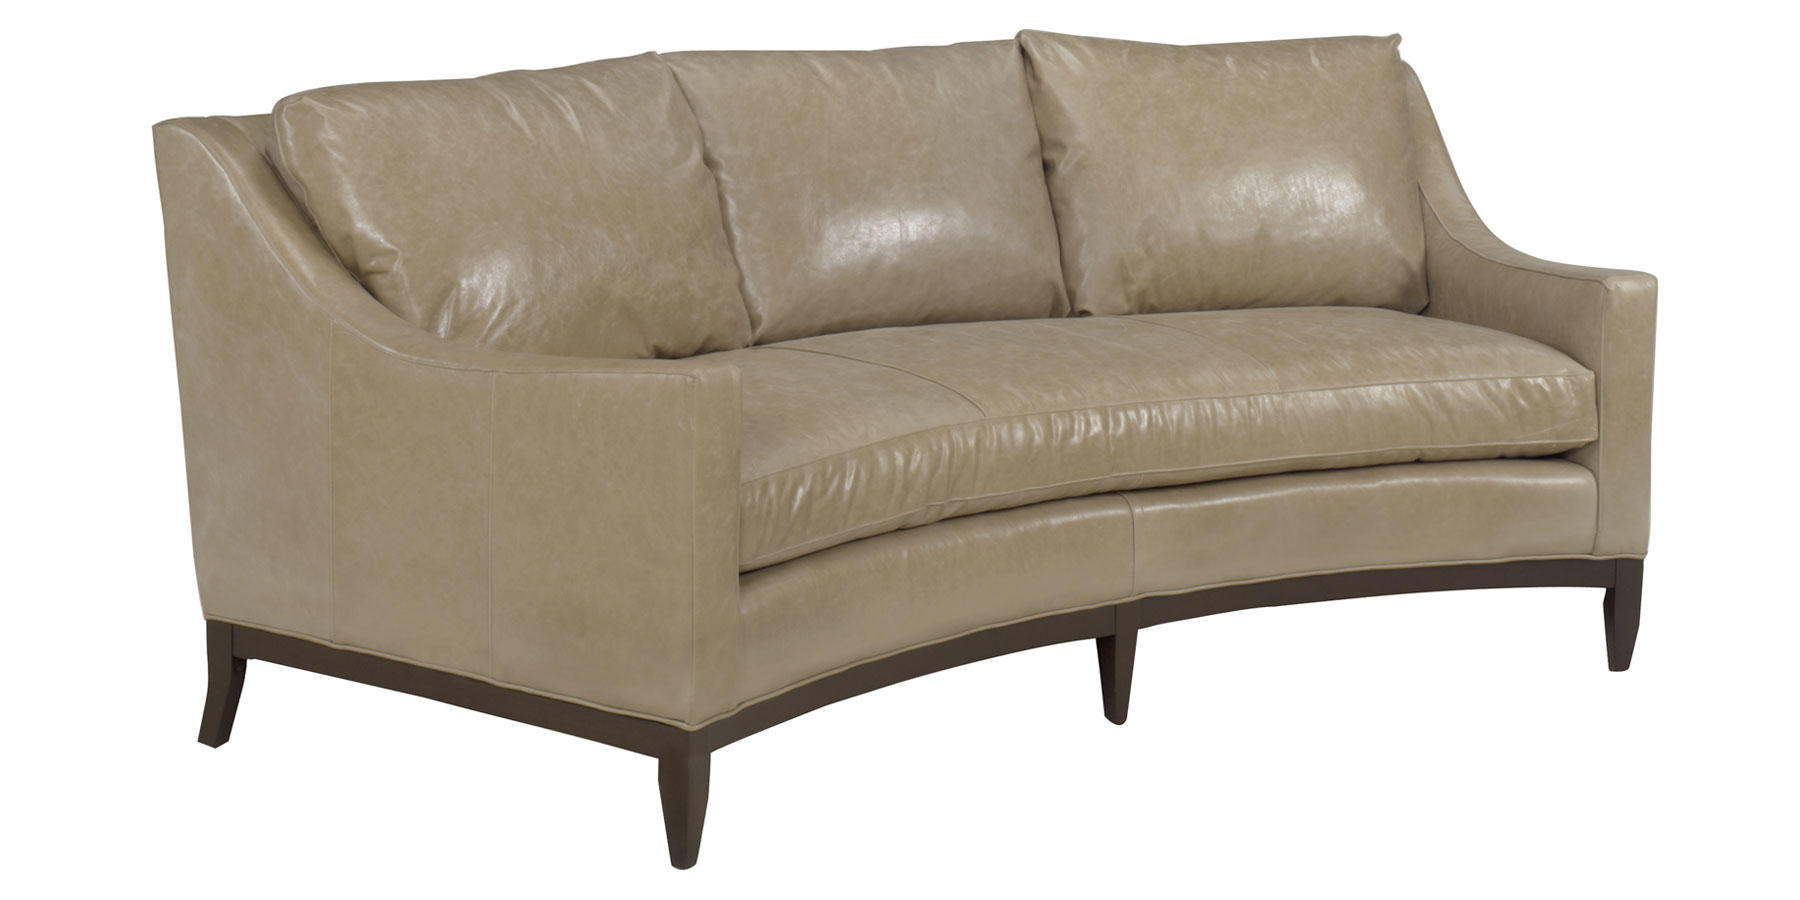 Cedric designer style curved conversation sofa leather for Conversation sofa